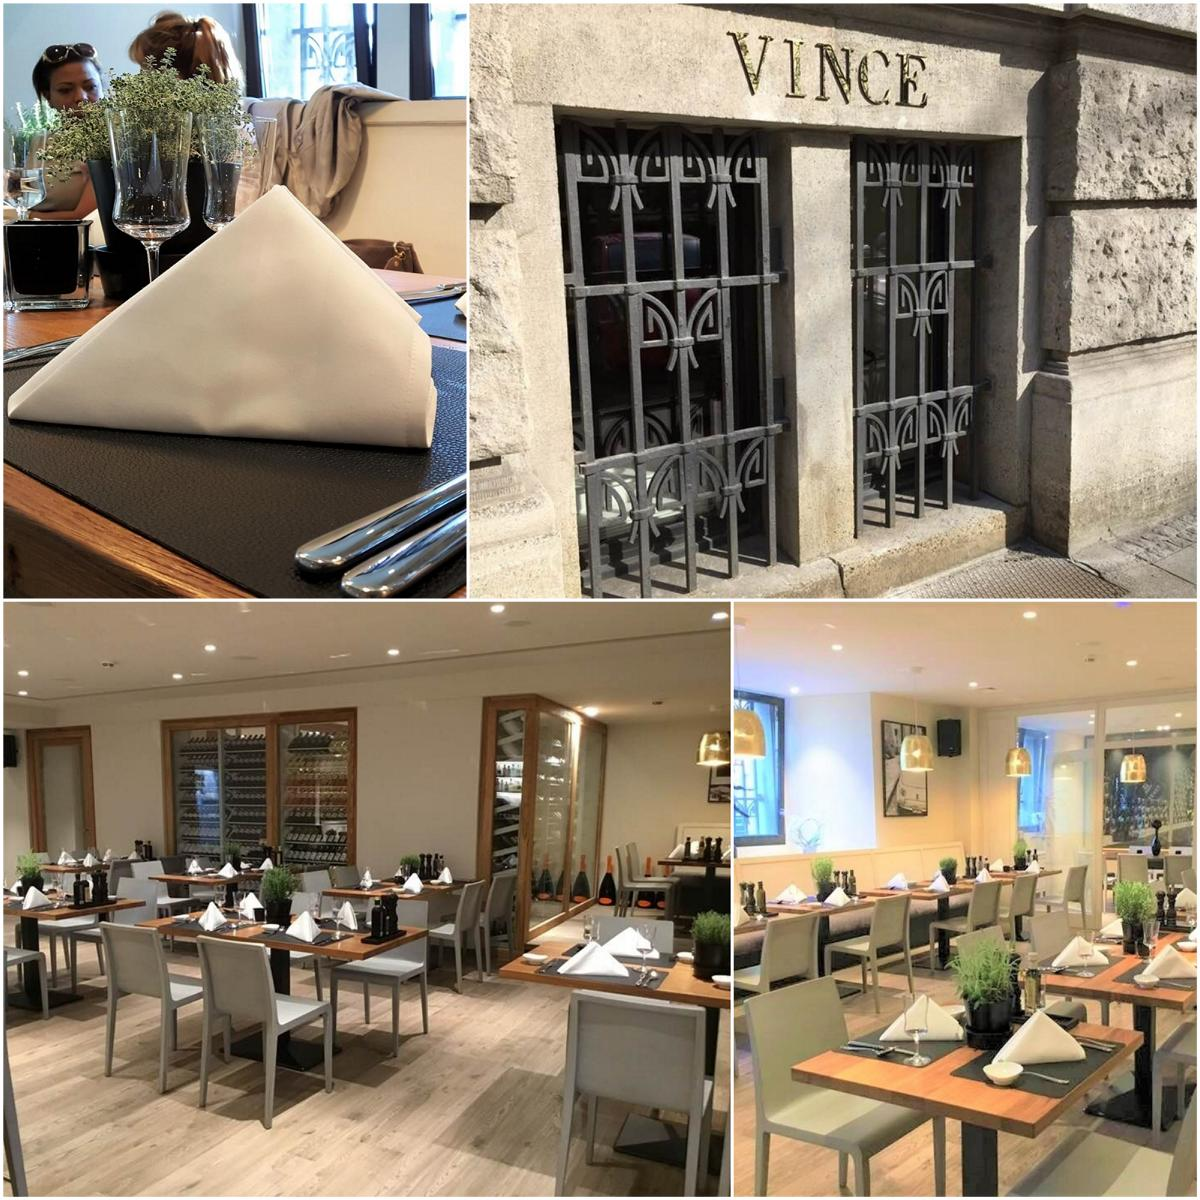 style hannover vince collage - VINCE: Bankfiliale mutiert zur Vinoteca